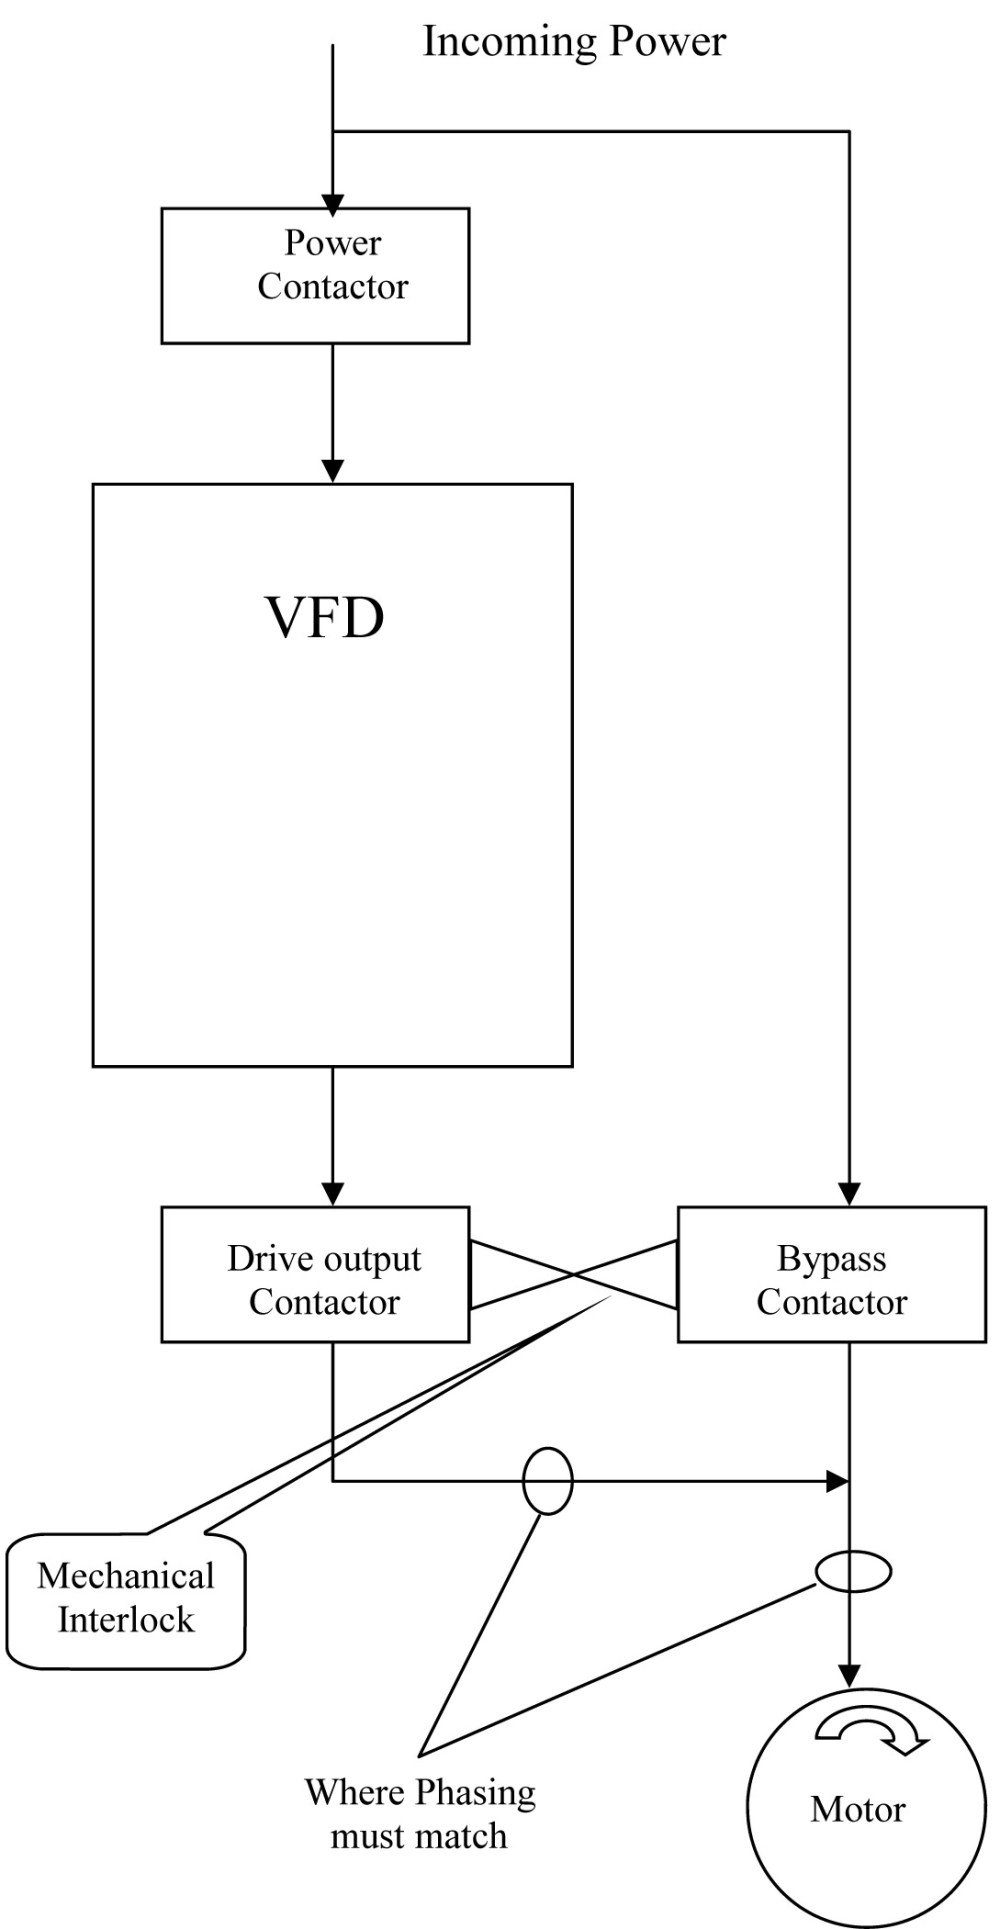 medium resolution of proper phasing of a vfd with bypass